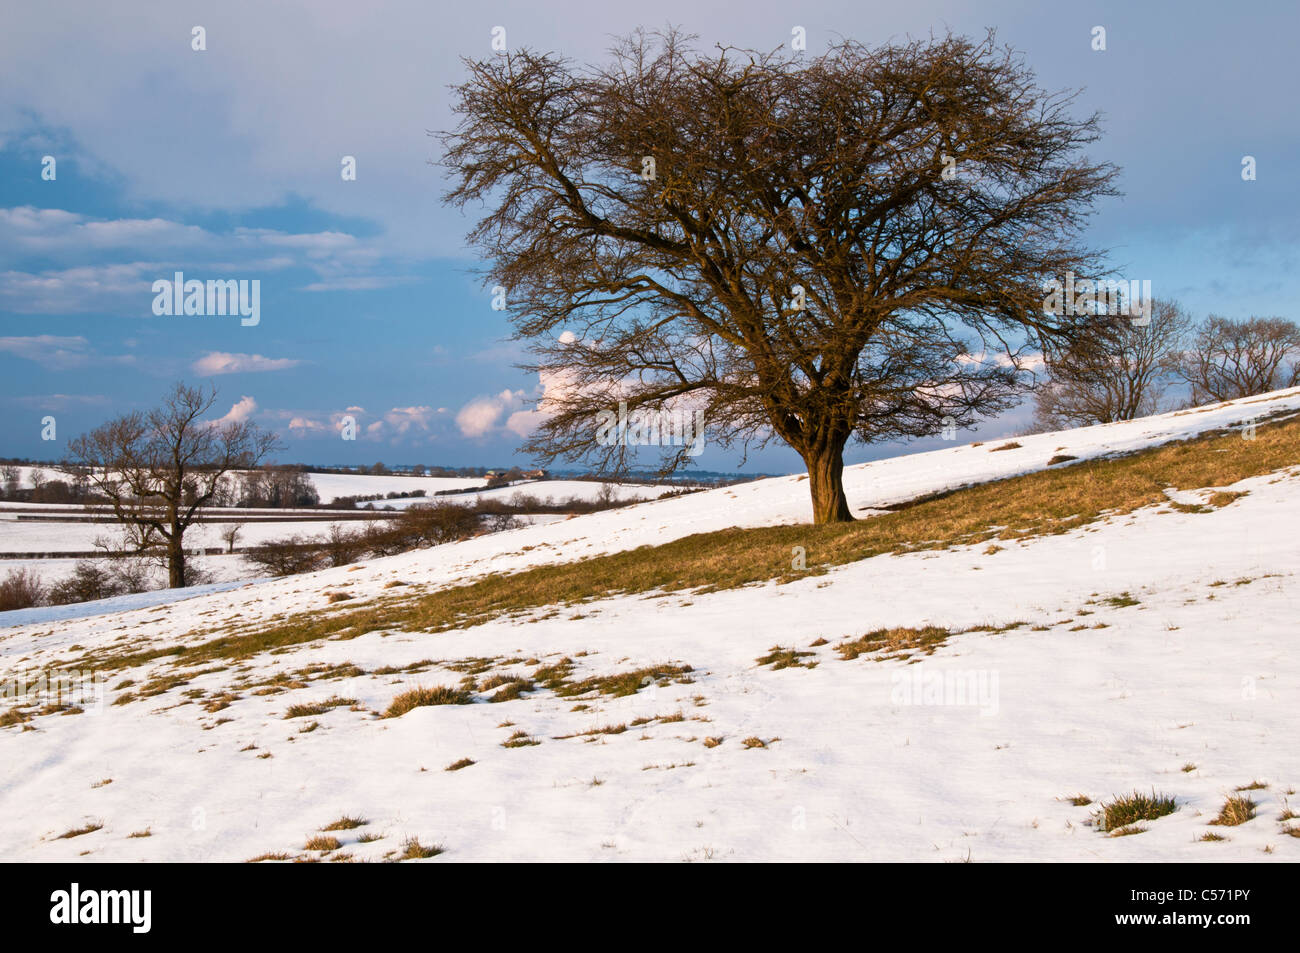 Late afternoon winter sun catches a lone Hawthorn tree on the snow-covered slopes of Honey Hill in Northamptonshire, - Stock Image